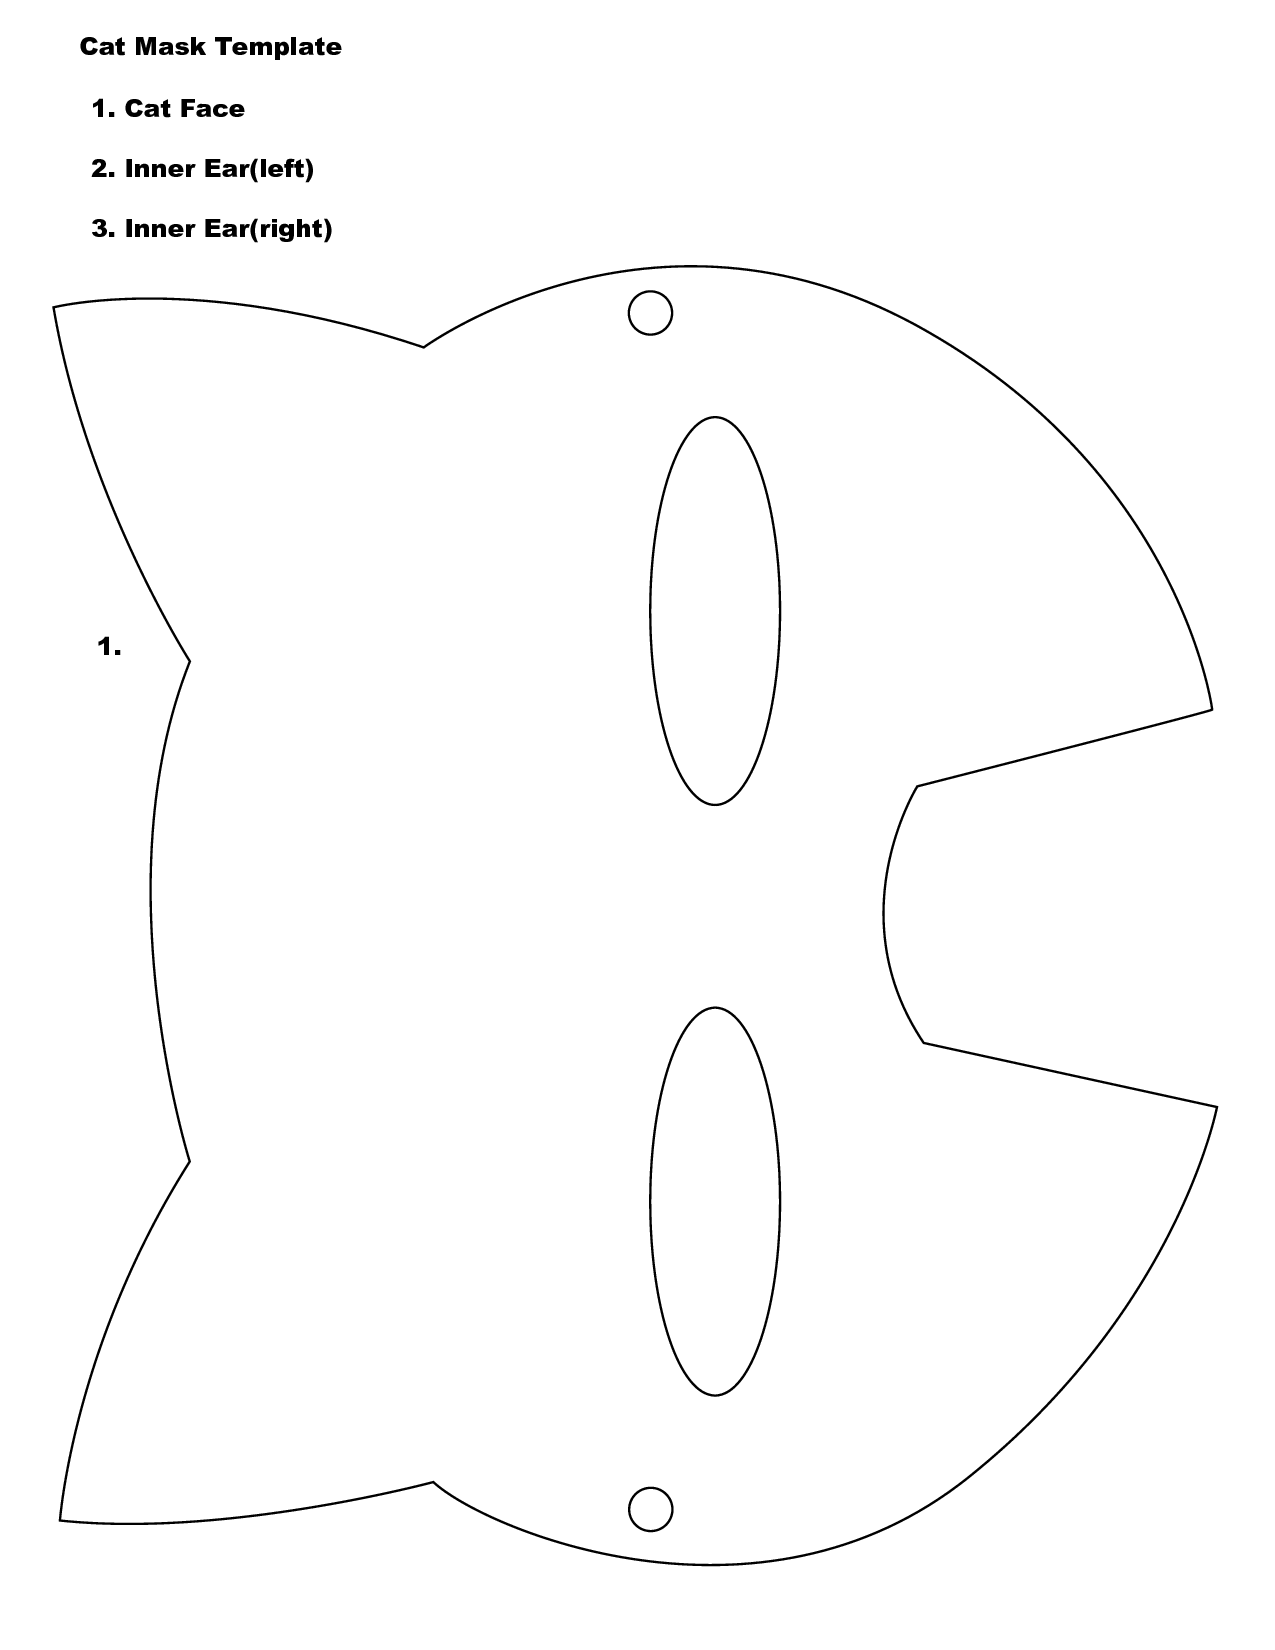 Cat Mask Template : template, Template, Printable, Images, Cliparts.co, Template,, Printable,, Image